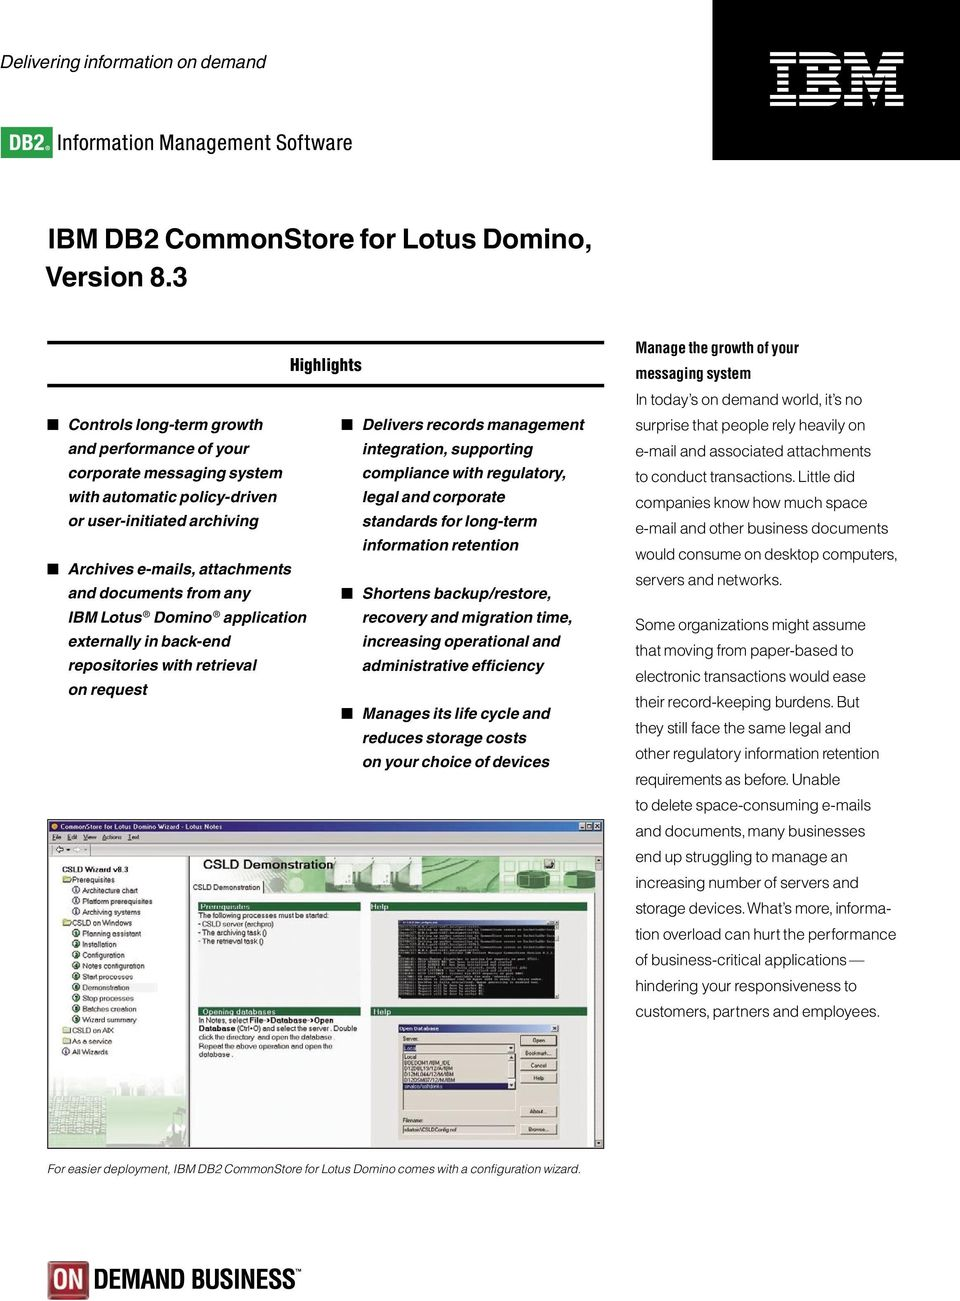 legal and corporate or user-initiated archiving standards for long-term information retention Archives e-mails, attachments and documents from any Shortens backup/restore, IBM Lotus Domino